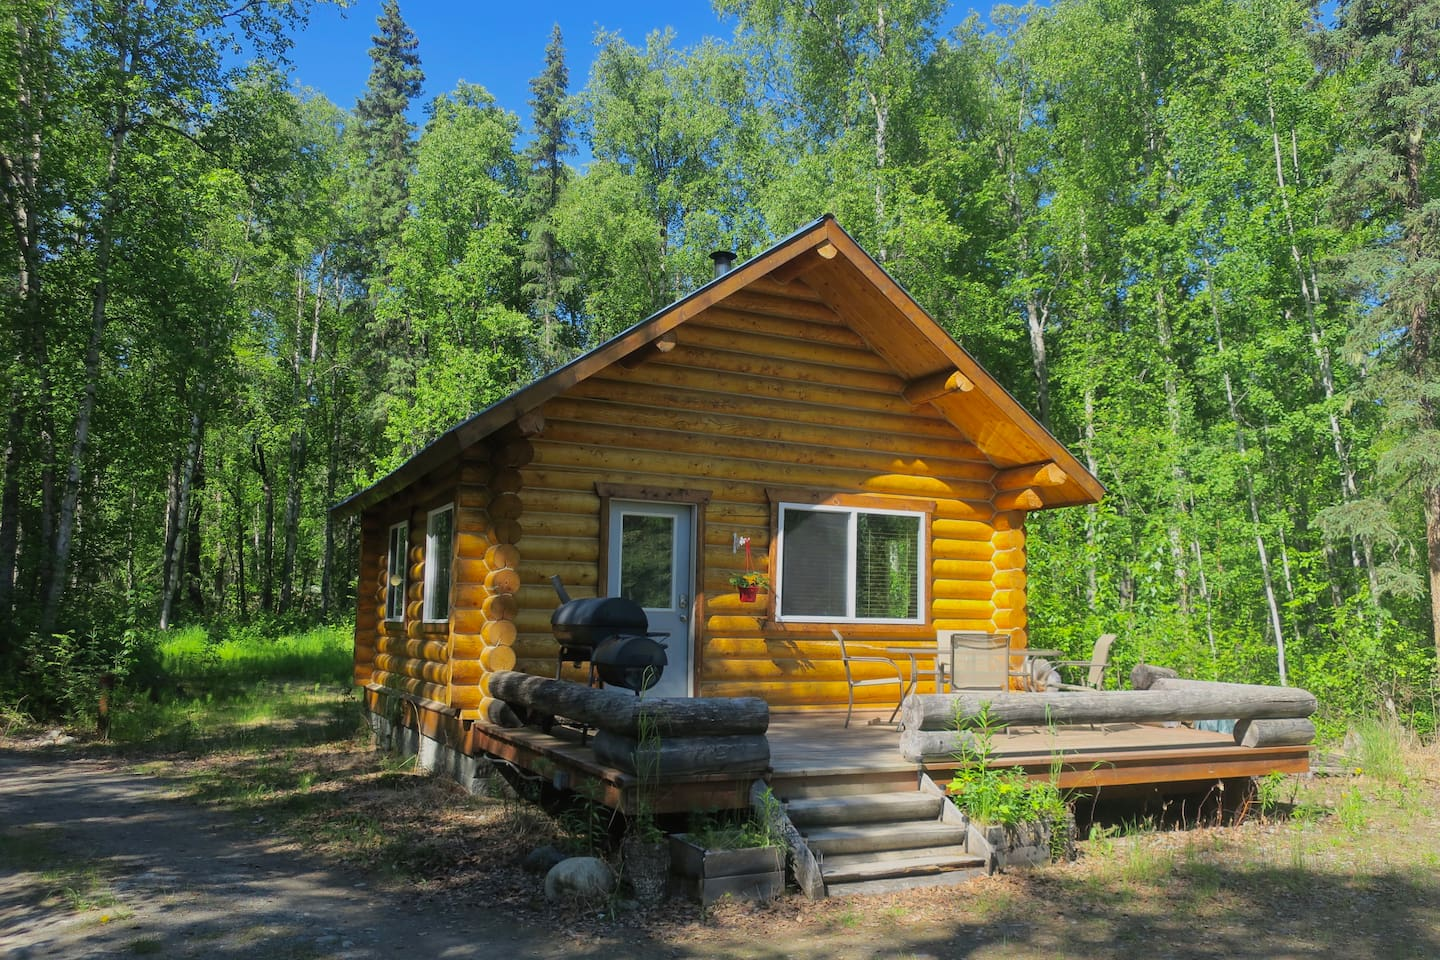 Cozy log cabin nestled in the woods near Christiansen Lake, including large front deck with grill, dining table, and chairs